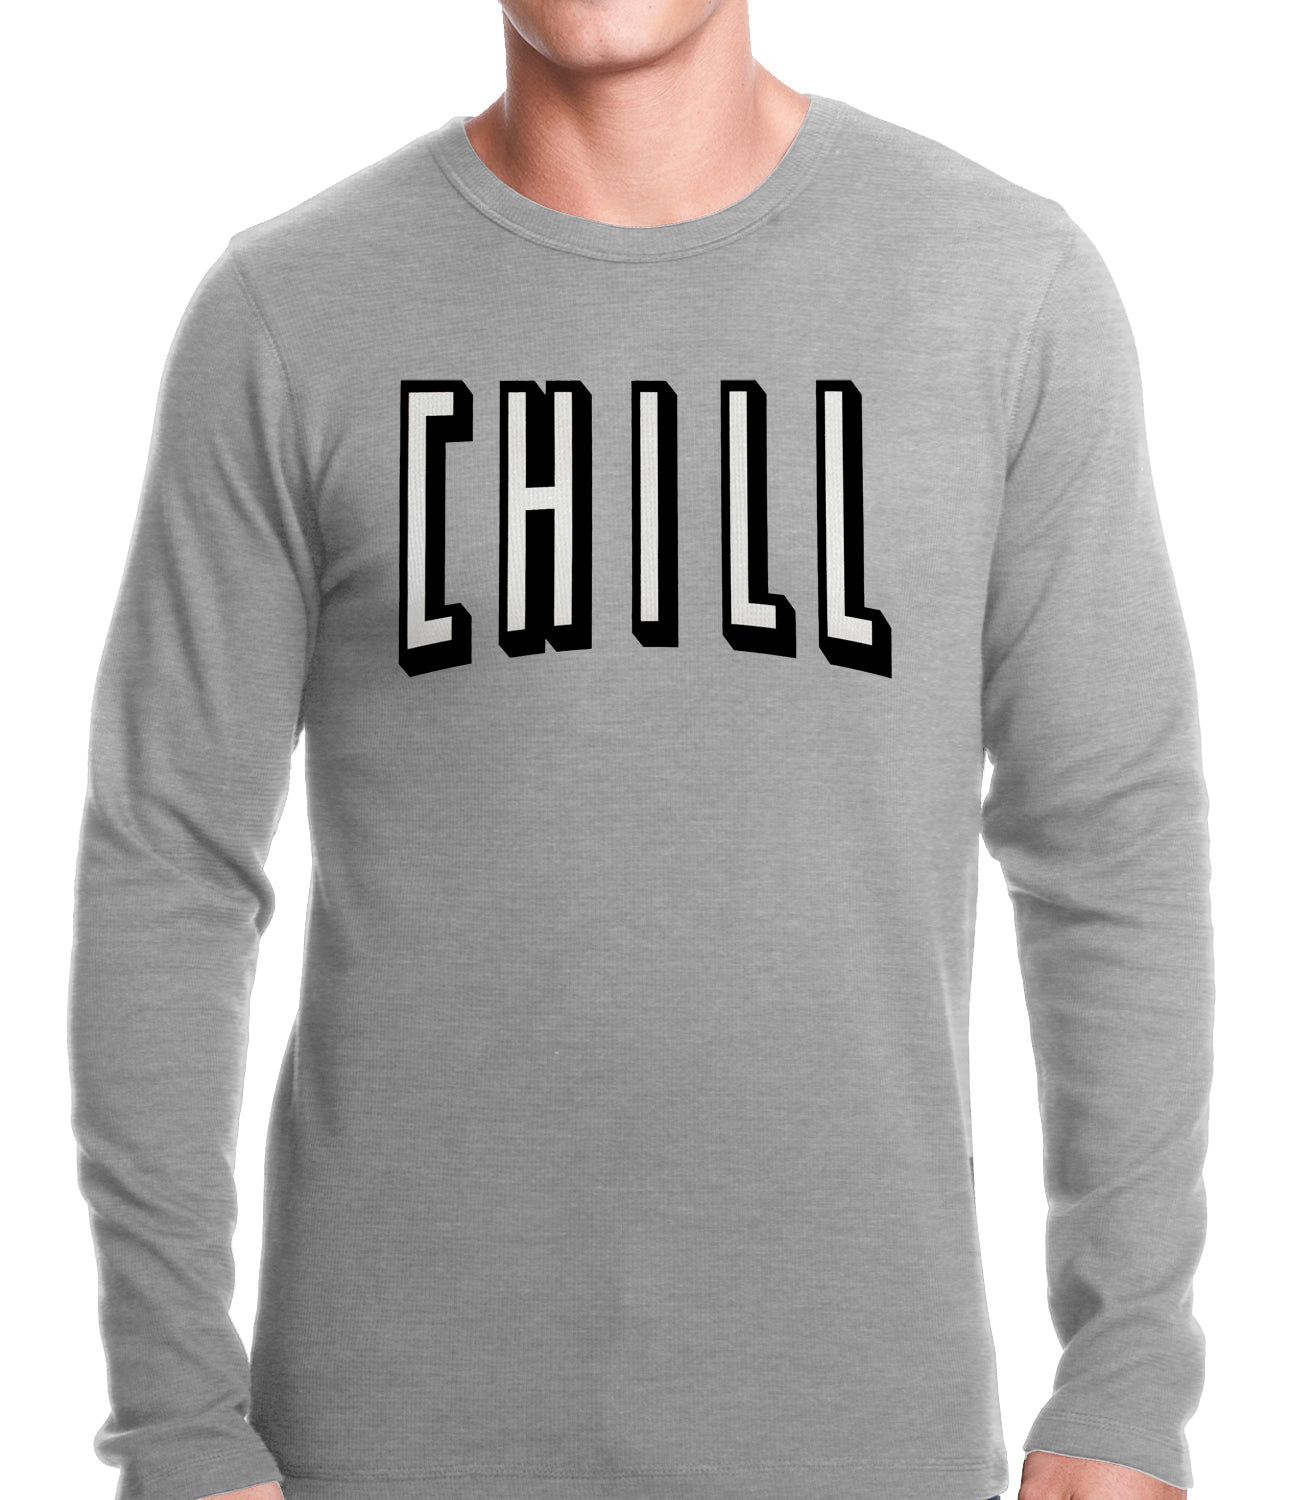 Movie & Chill Funny Hook-up Thermal Shirt